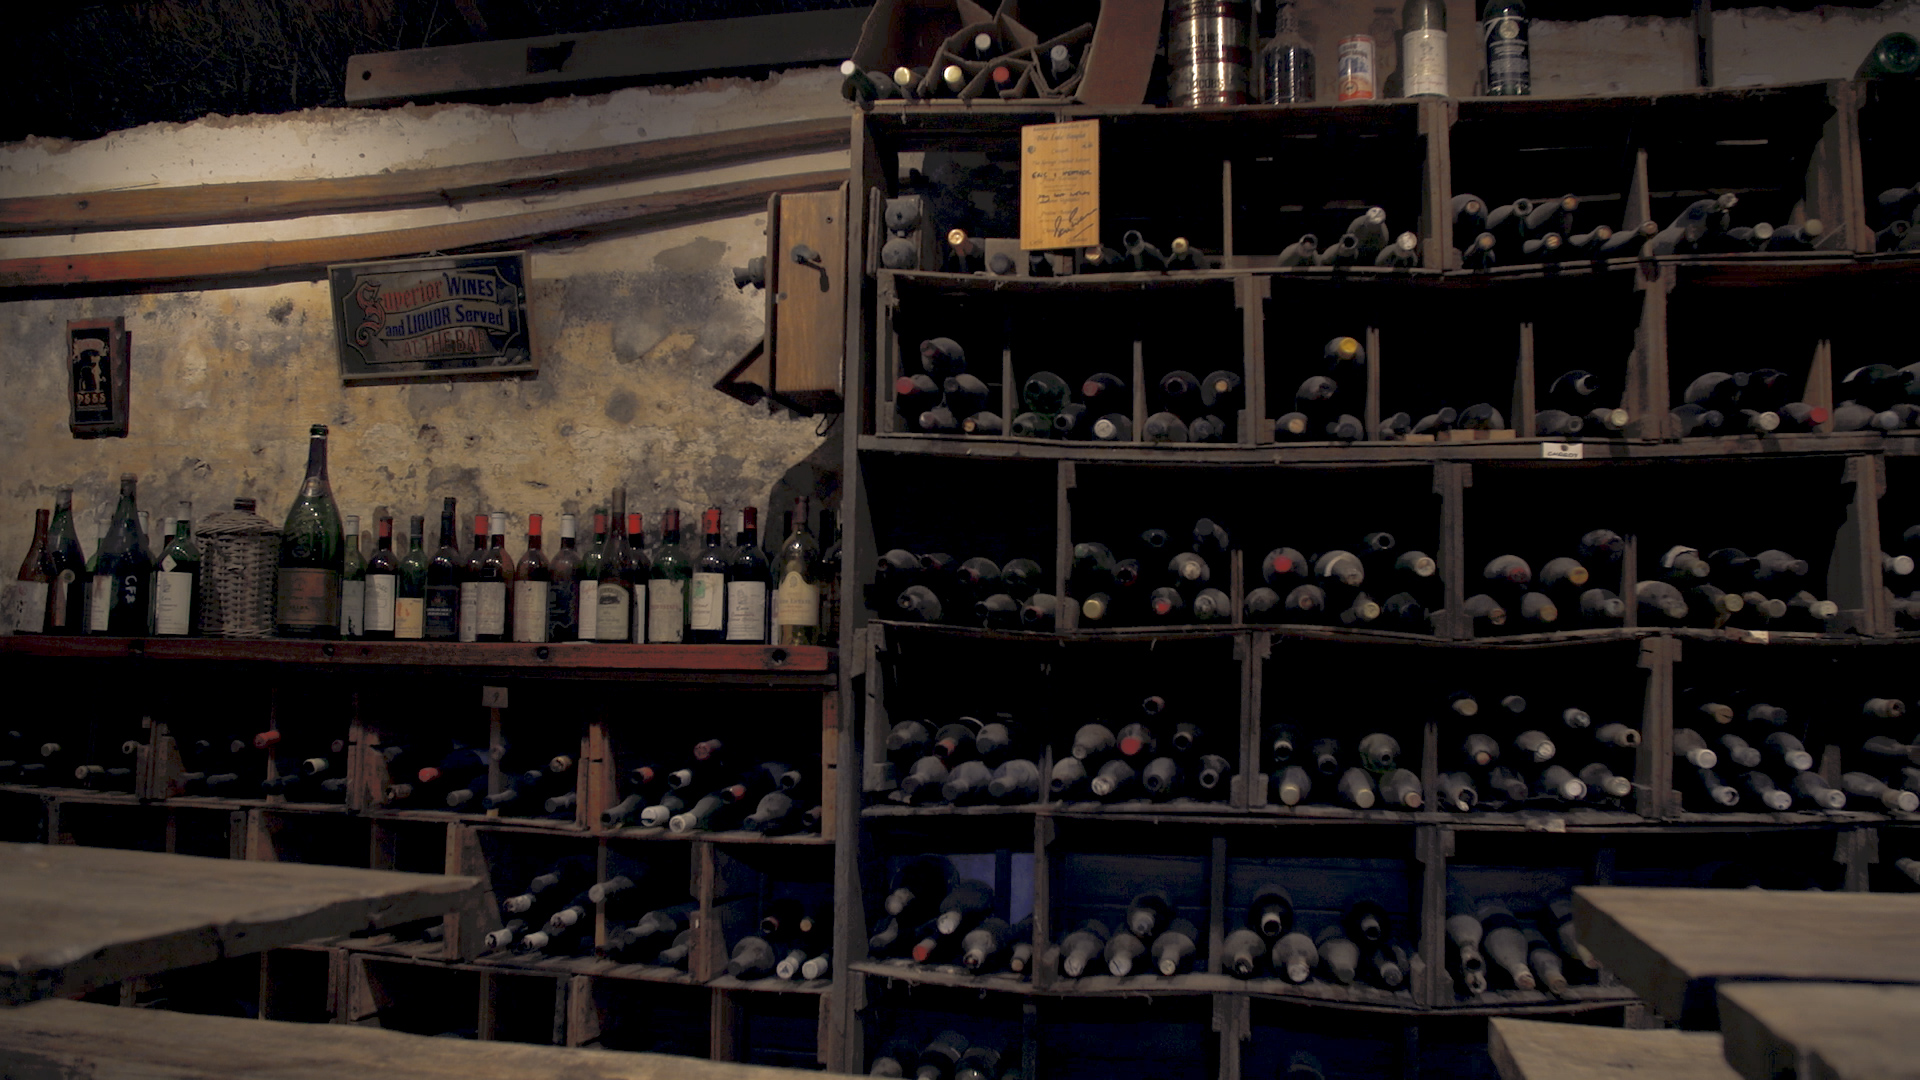 Old wine cellar full of vintage bottles of wine